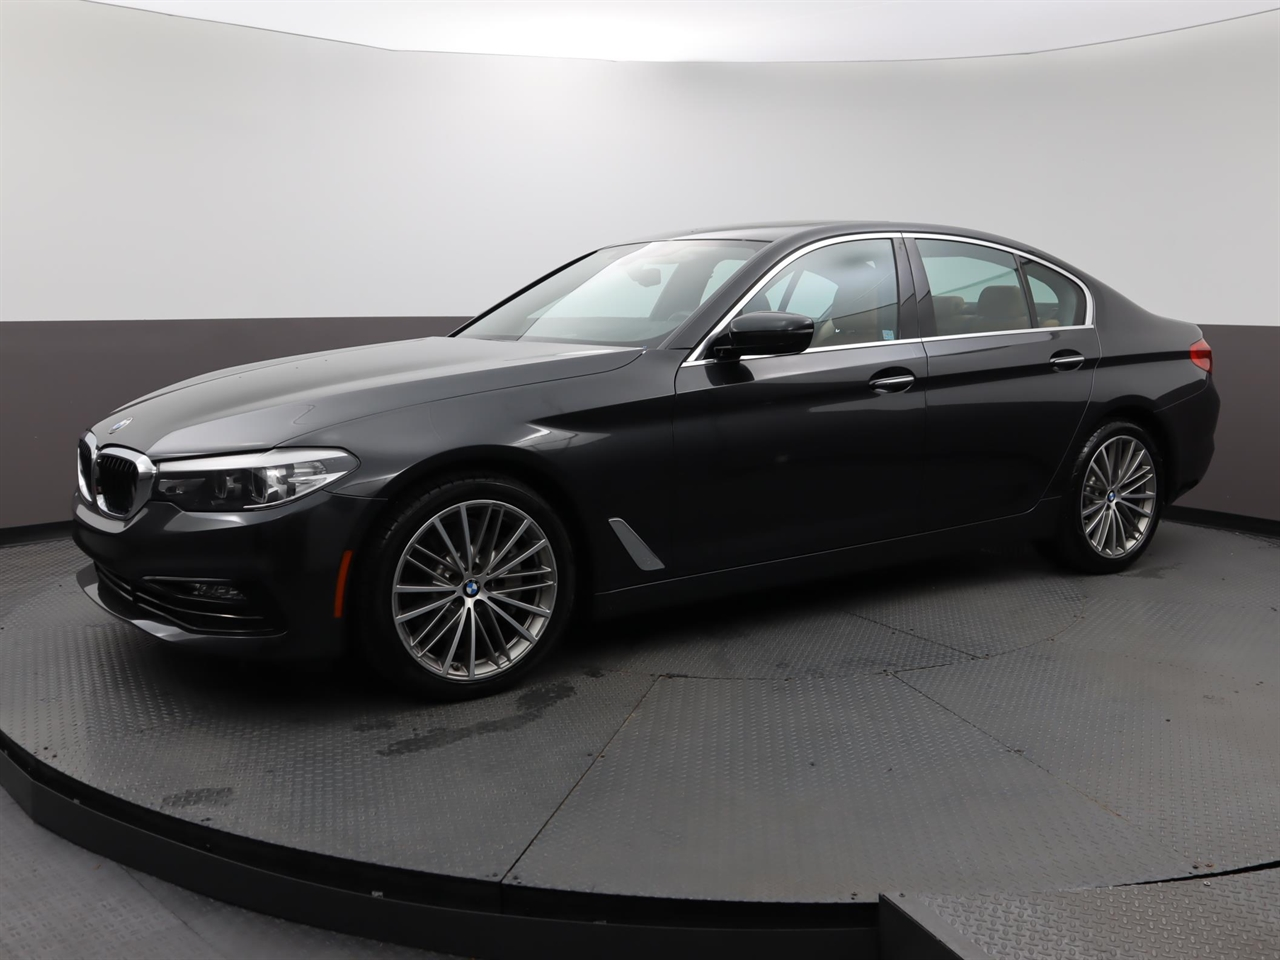 Used BMW 5-SERIES 2017 MARGATE 530I